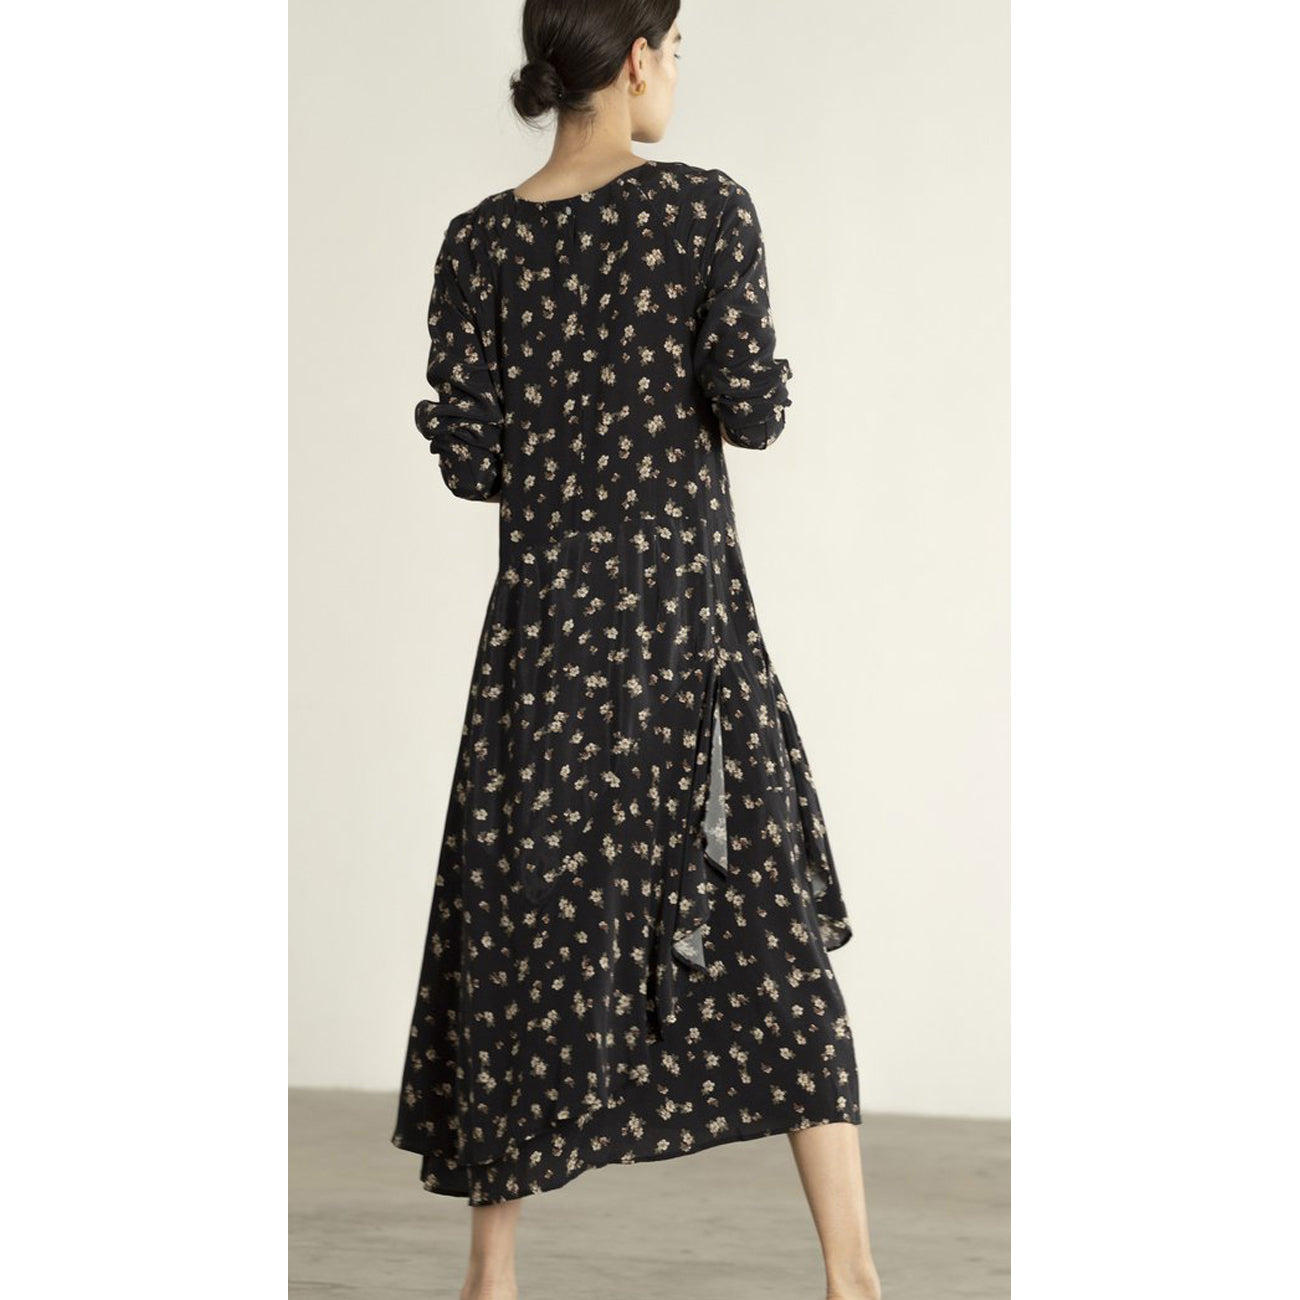 Maria Stanley Willa Dress in Botanical